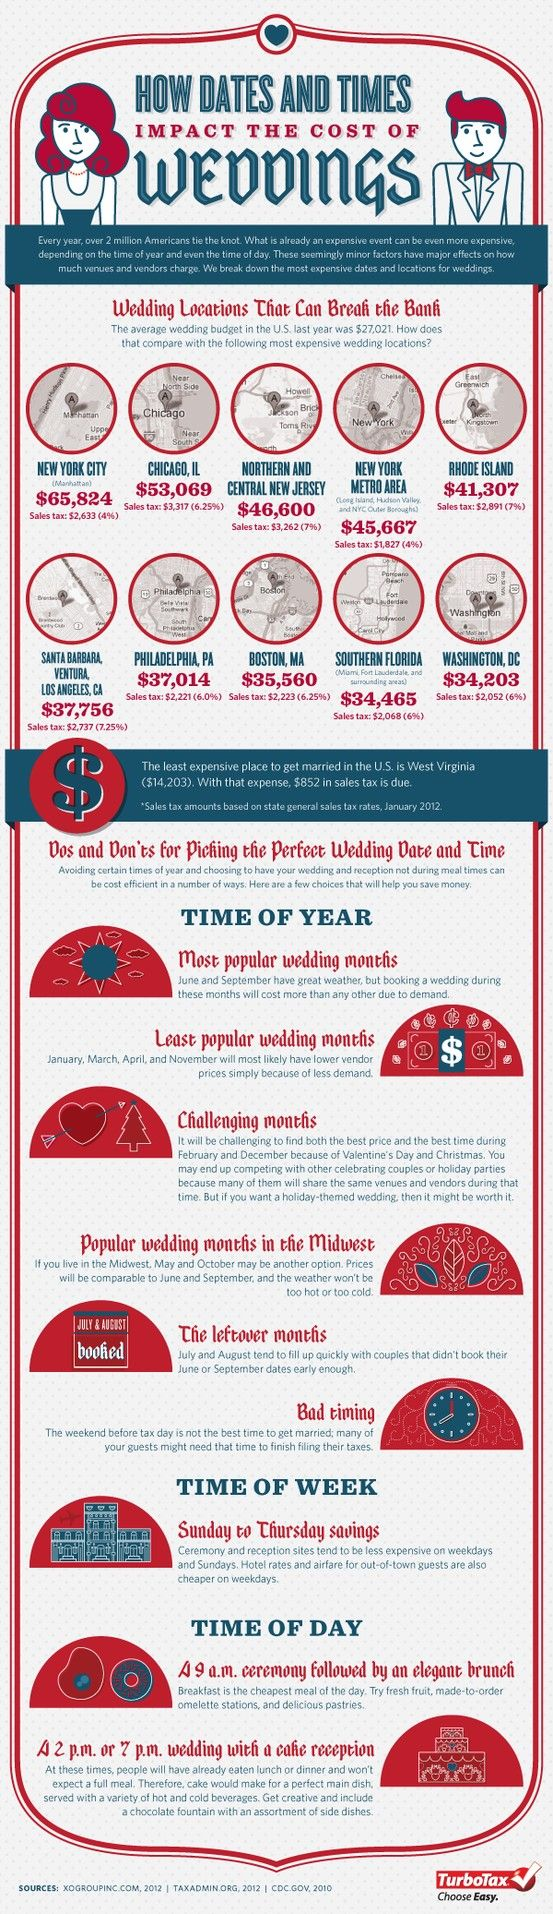 34 Best How To Plan Your Wedding Images On Pinterest Wedding Stuff